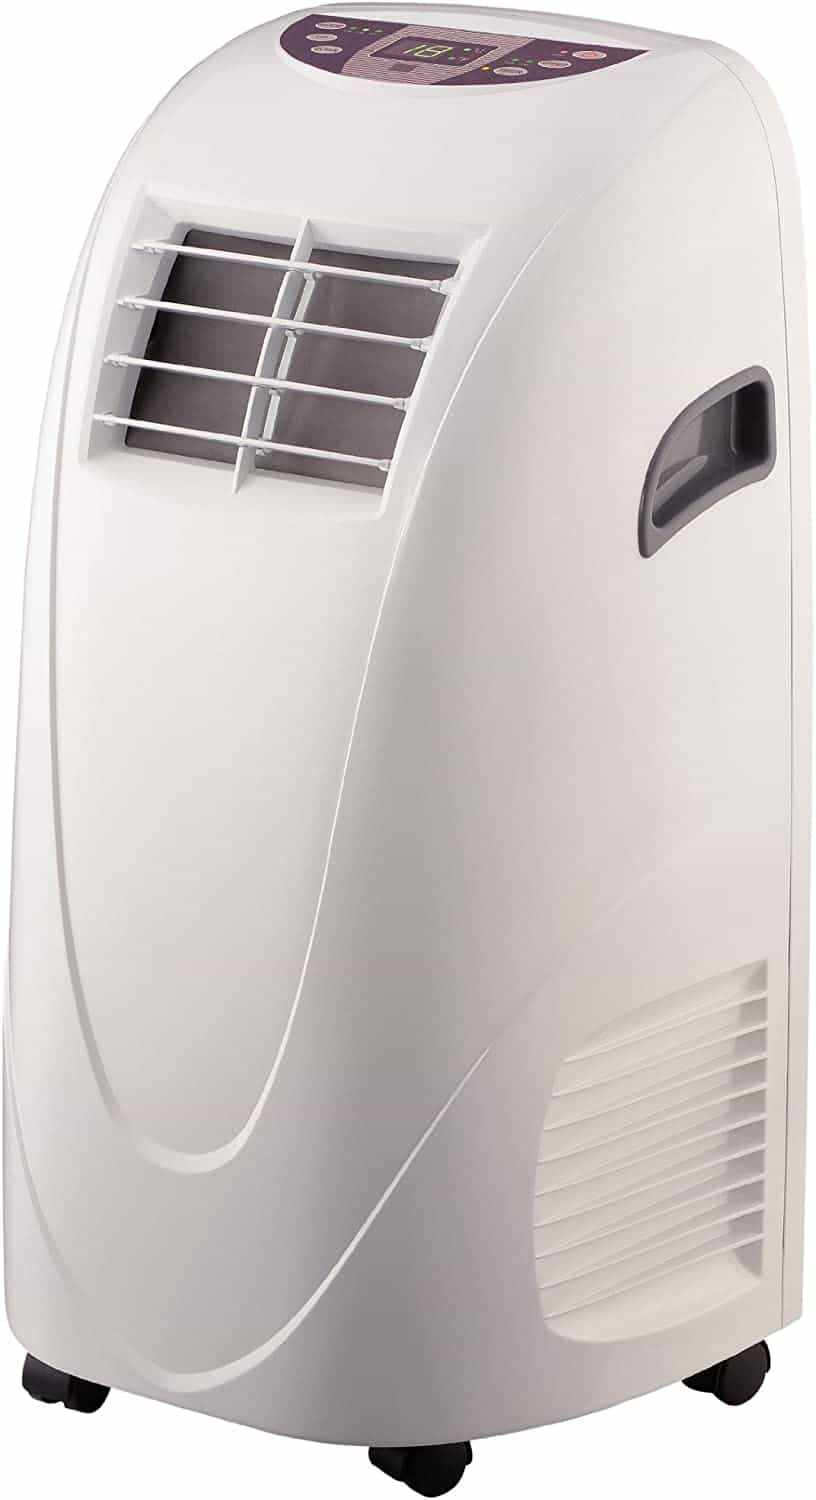 Global Air 10,000 BTU Portable Air Conditioner Review